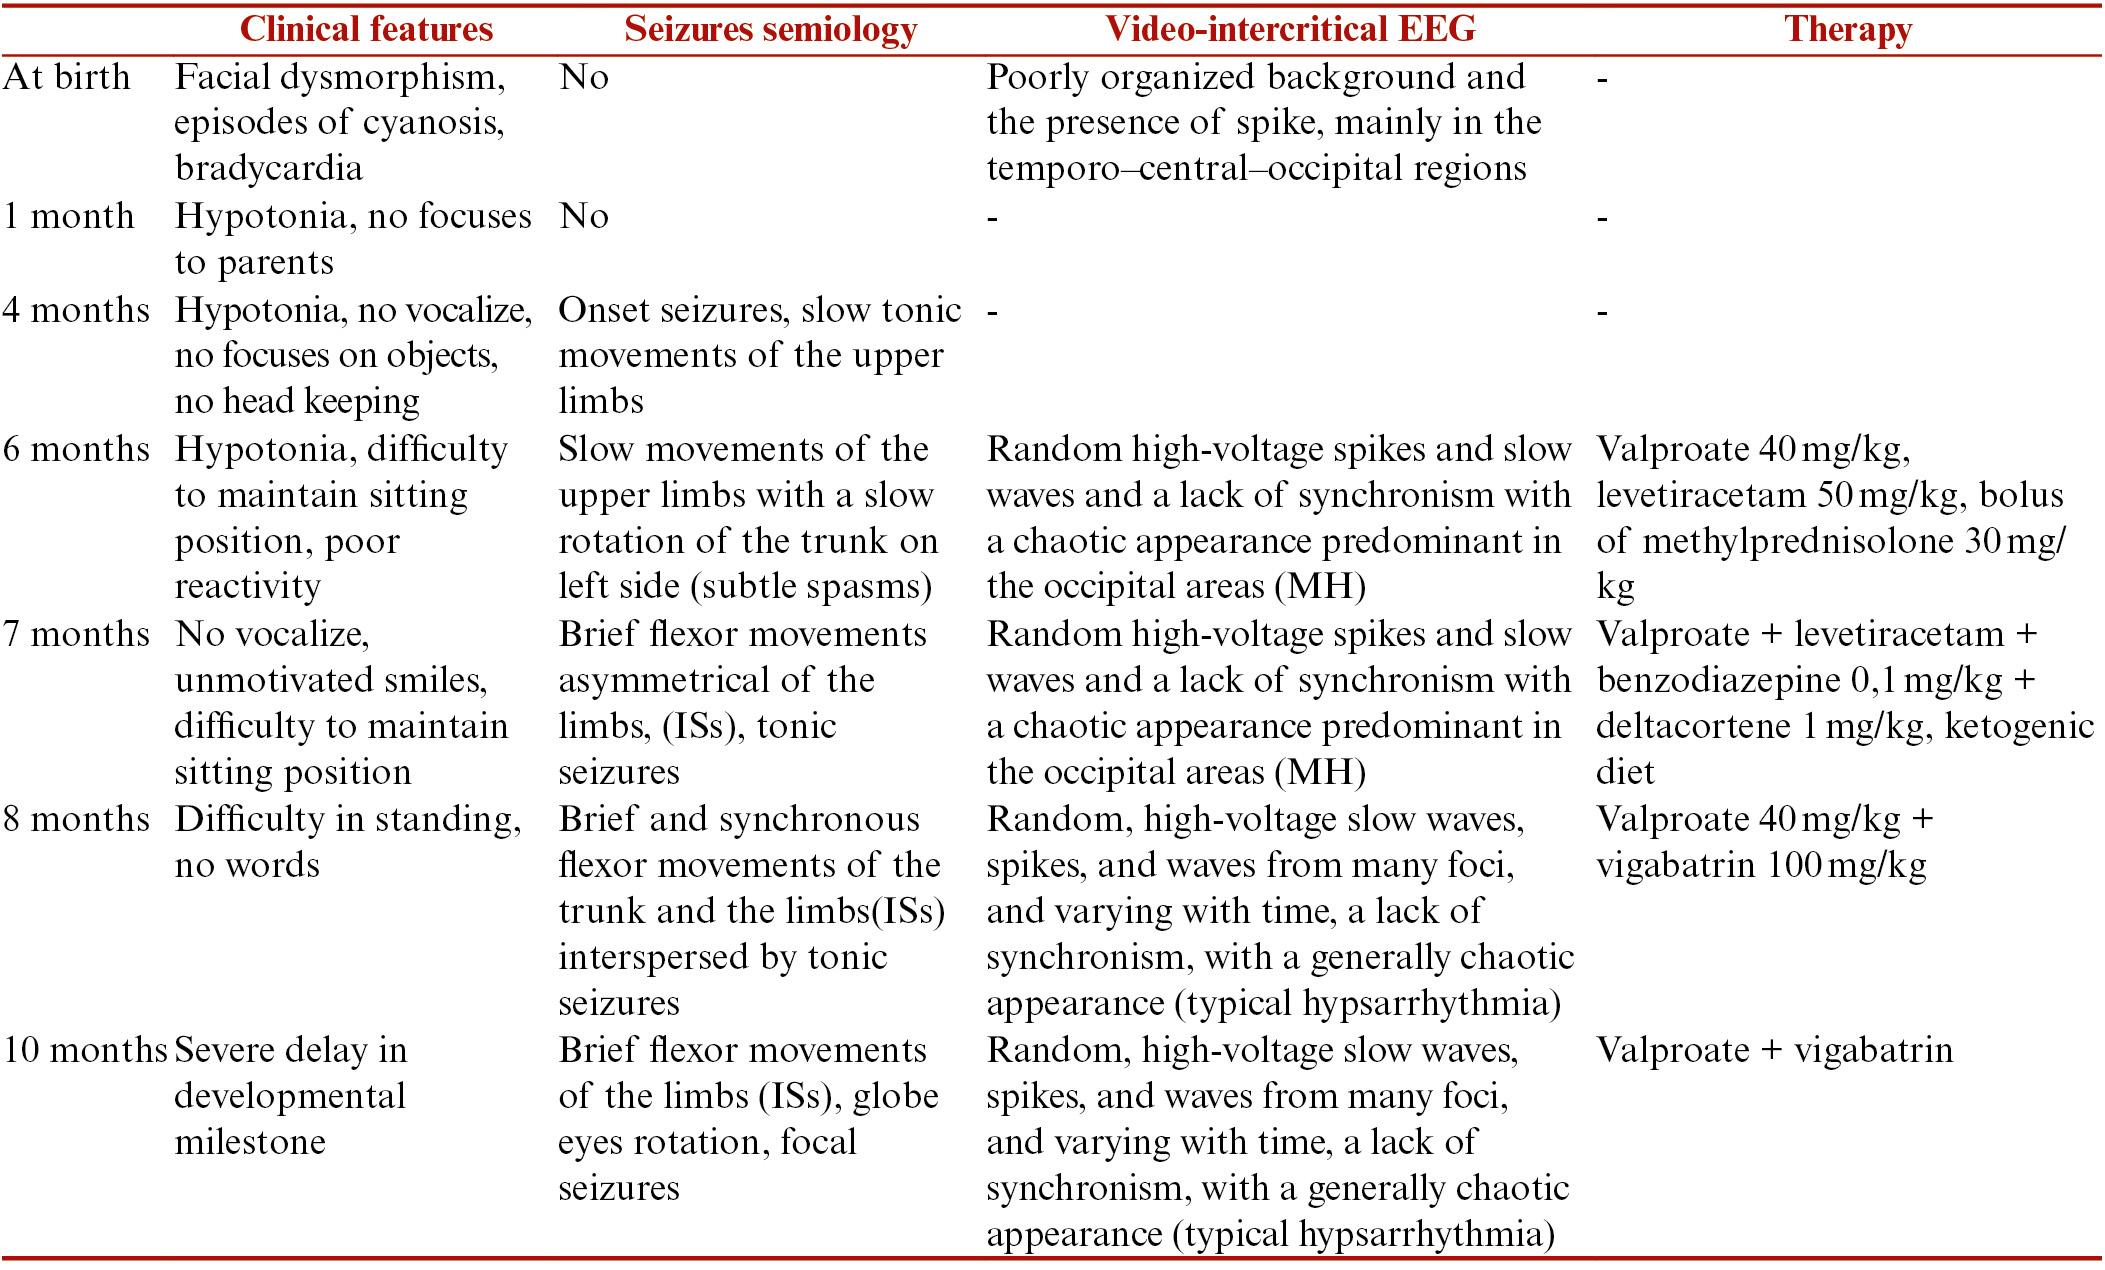 Table 1: Clinical features, seizures semiology, intercritical EEG, and treatment along the first year of life